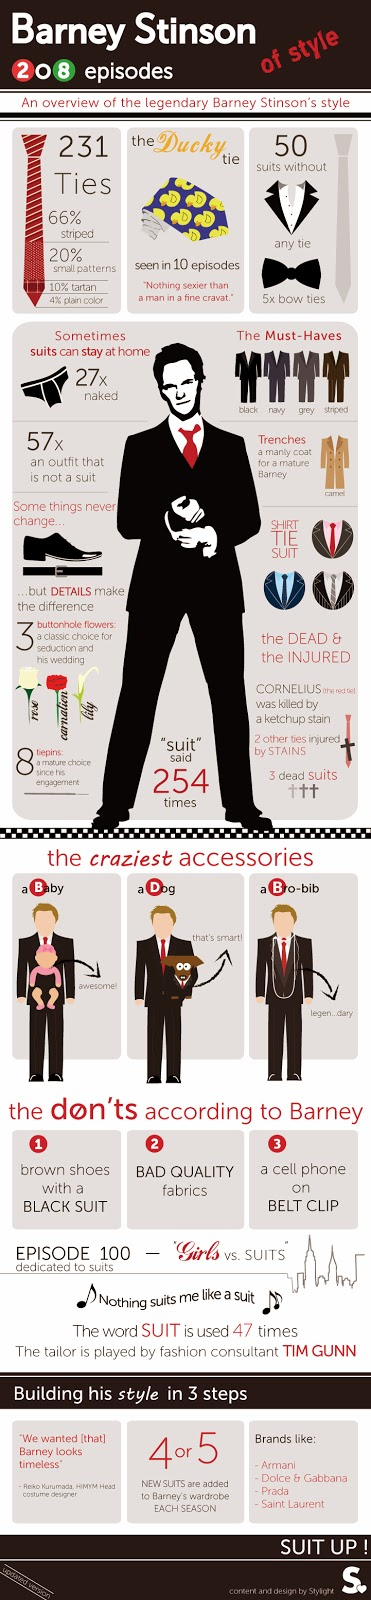 How to Suit Up Like Barney Stinson